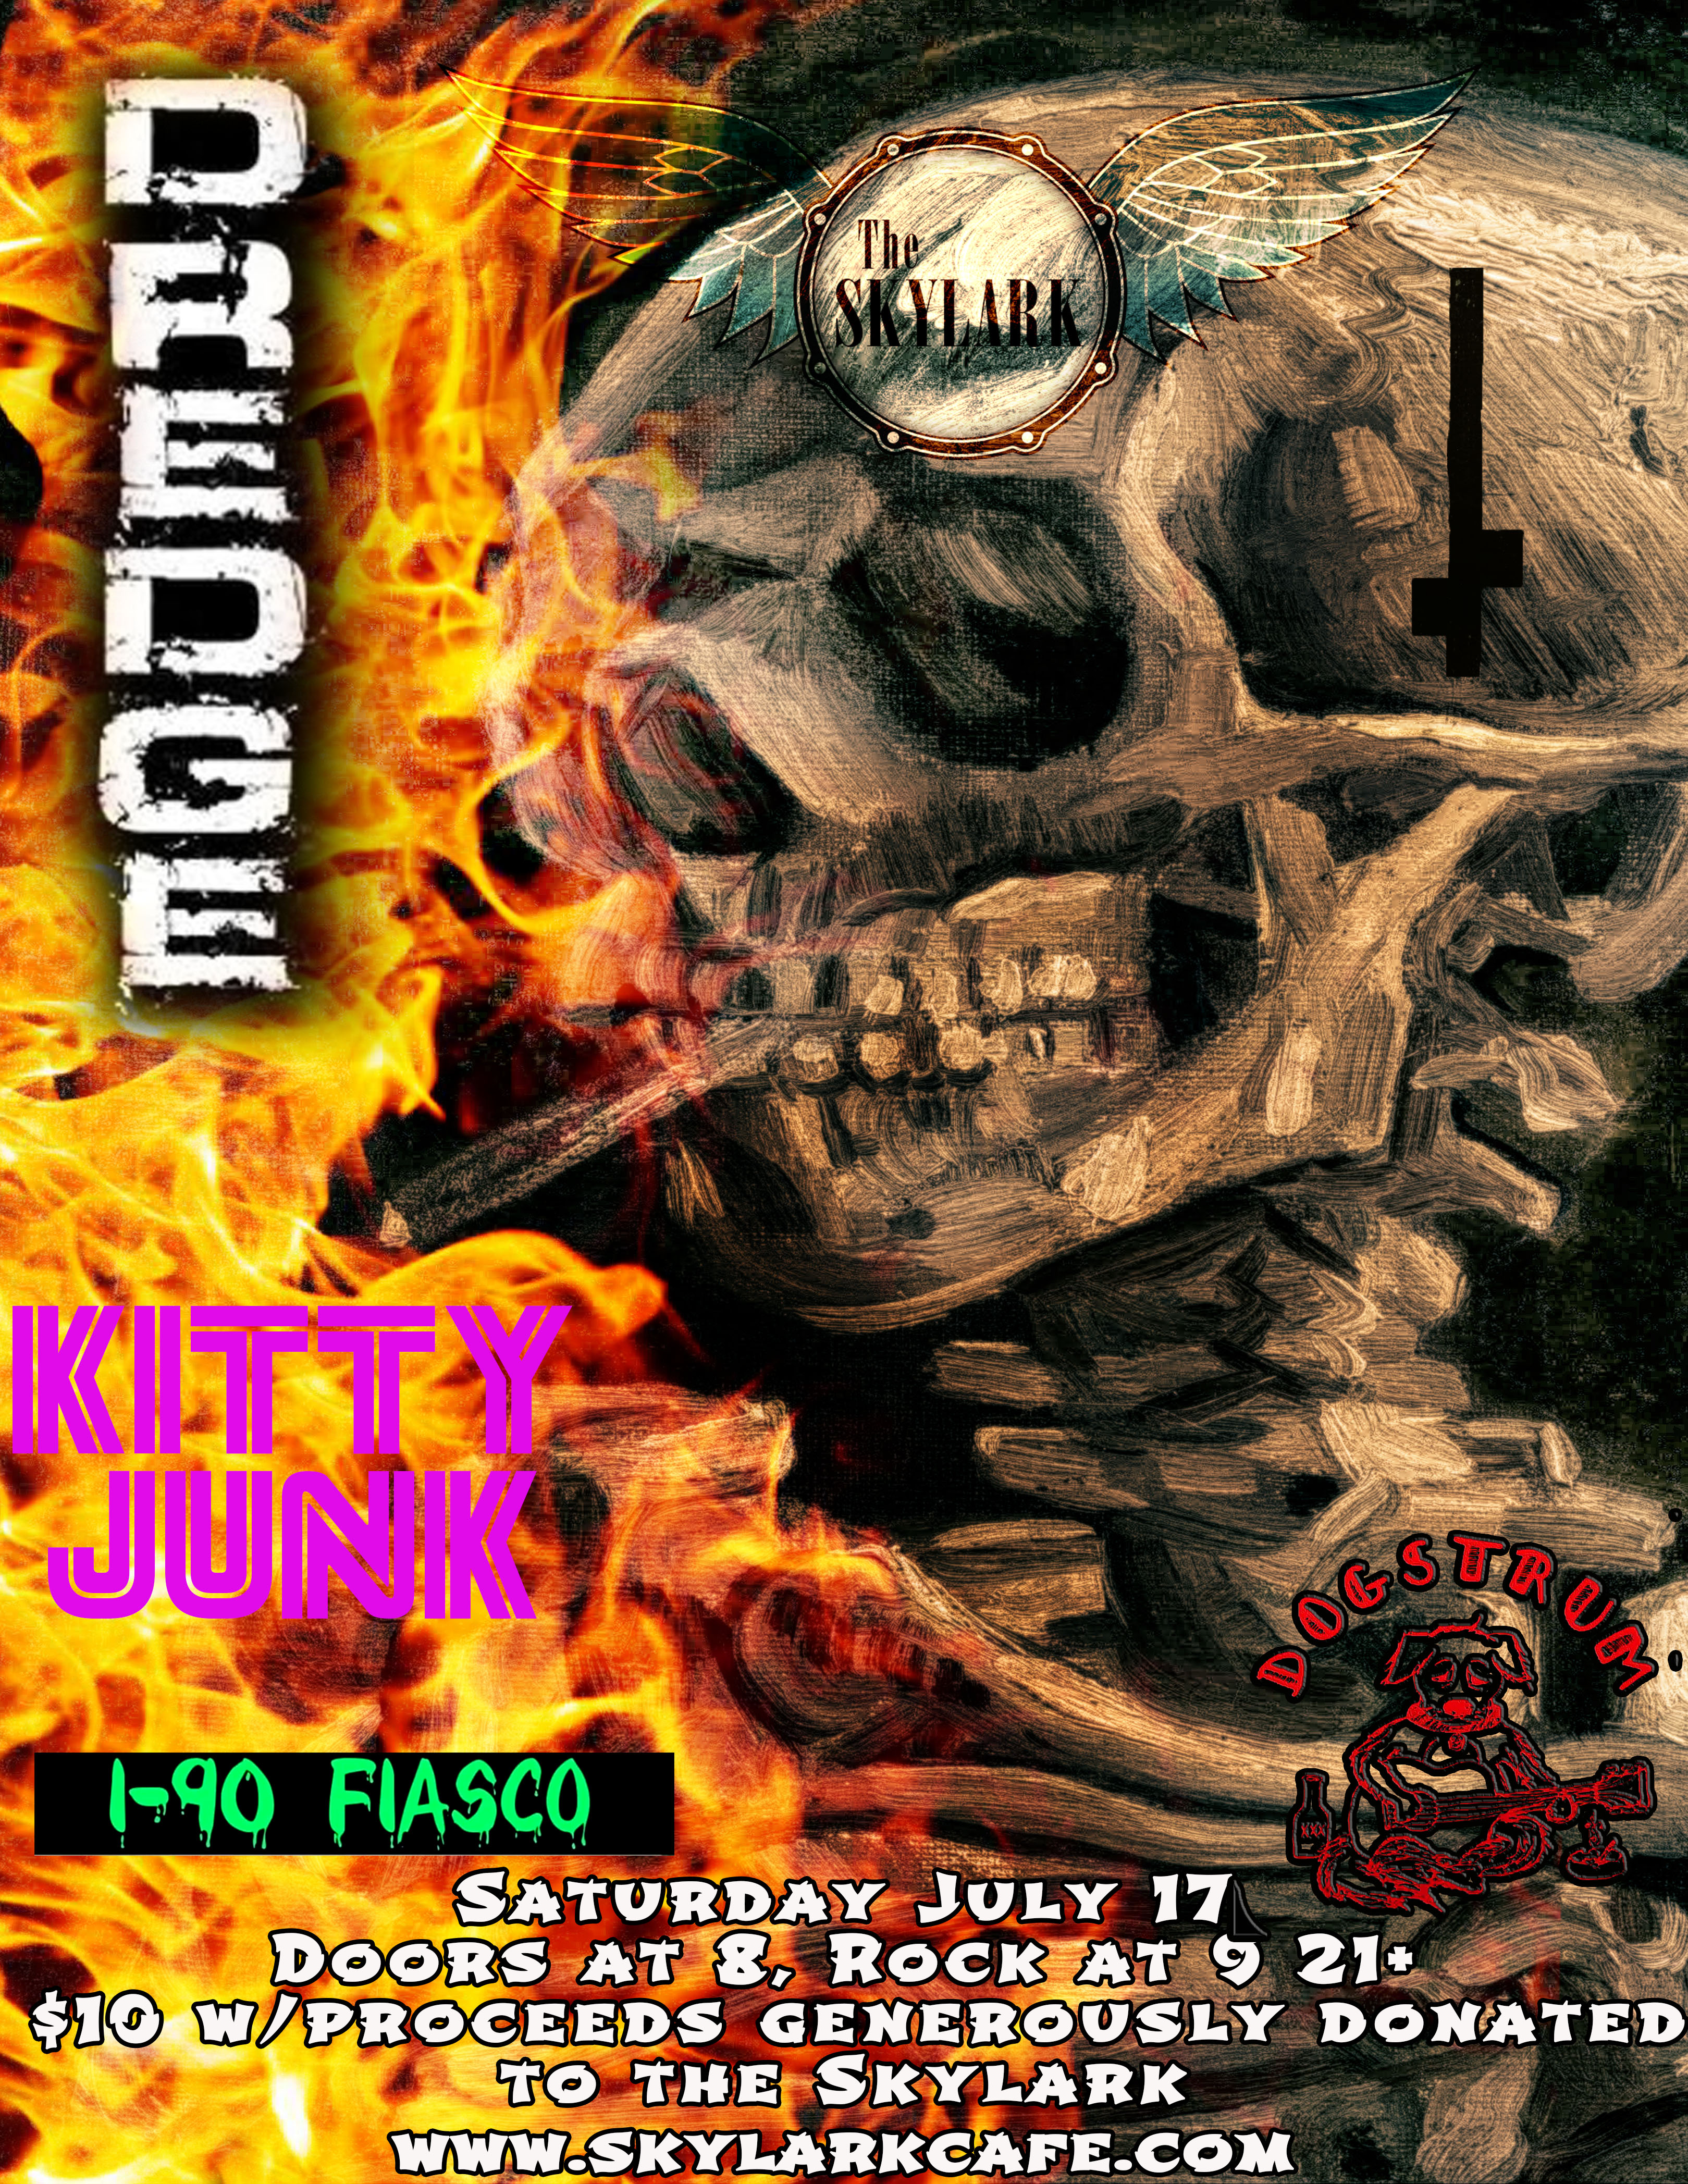 We are ready to blow out the cobwebs with some serious ROCK! Join us as DREDGE, Kitty Junk, I-90 Fiasco, and Dogstrum rock the house.